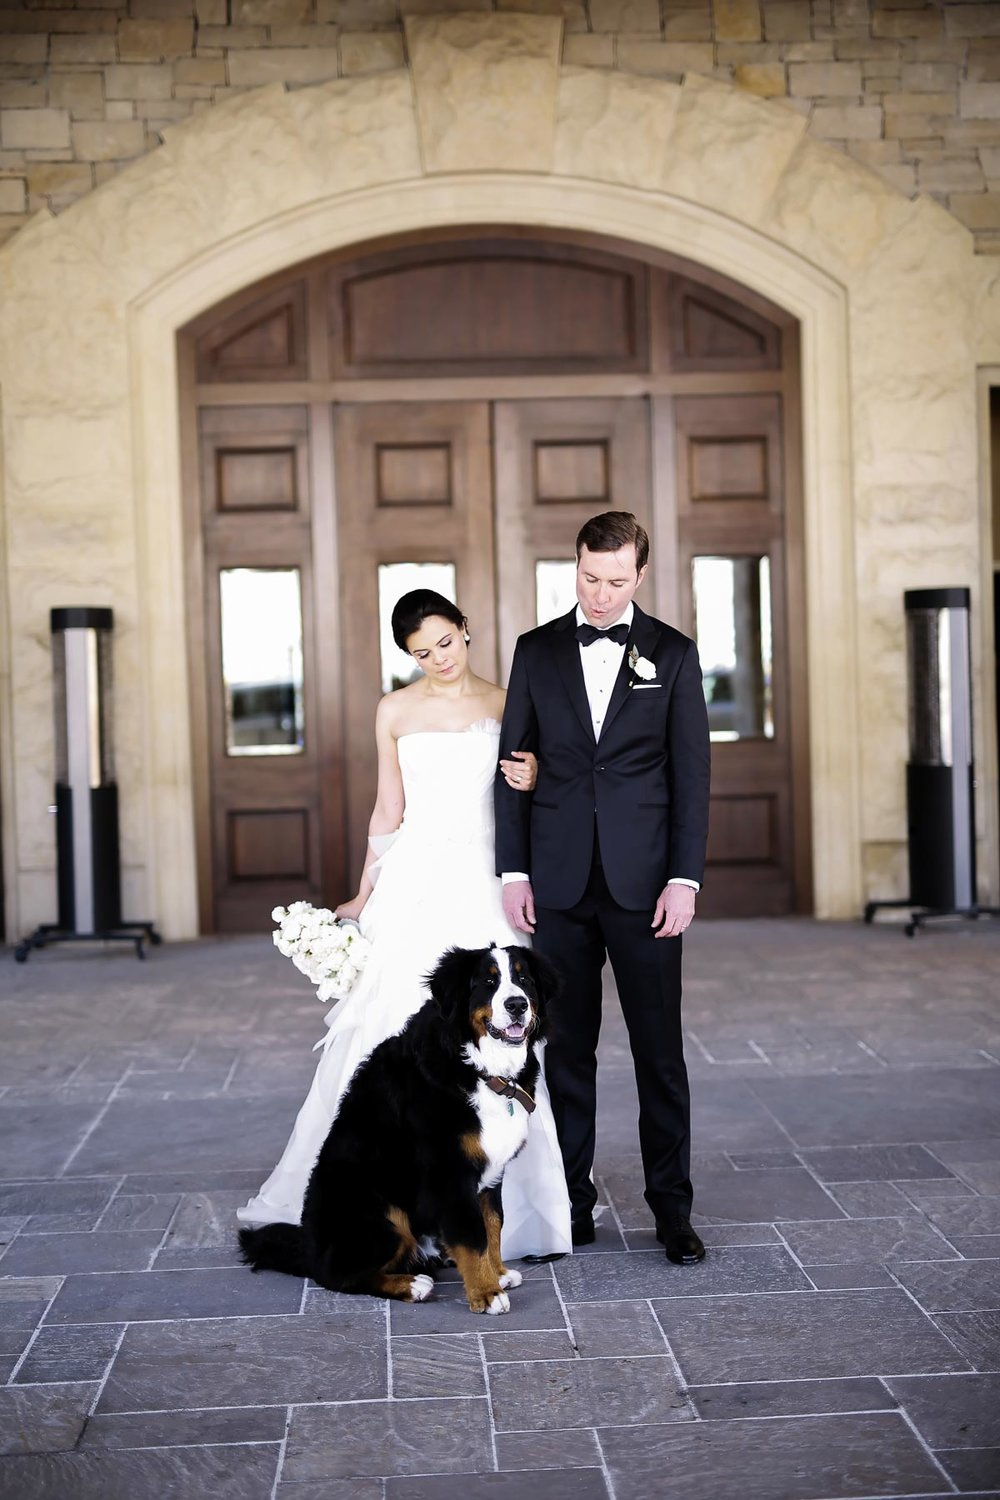 montage-deer-valley-weddings-dogs-at-weddings-utah-weddings-luxe-weddings_pepper_nix_photography-34.jpg